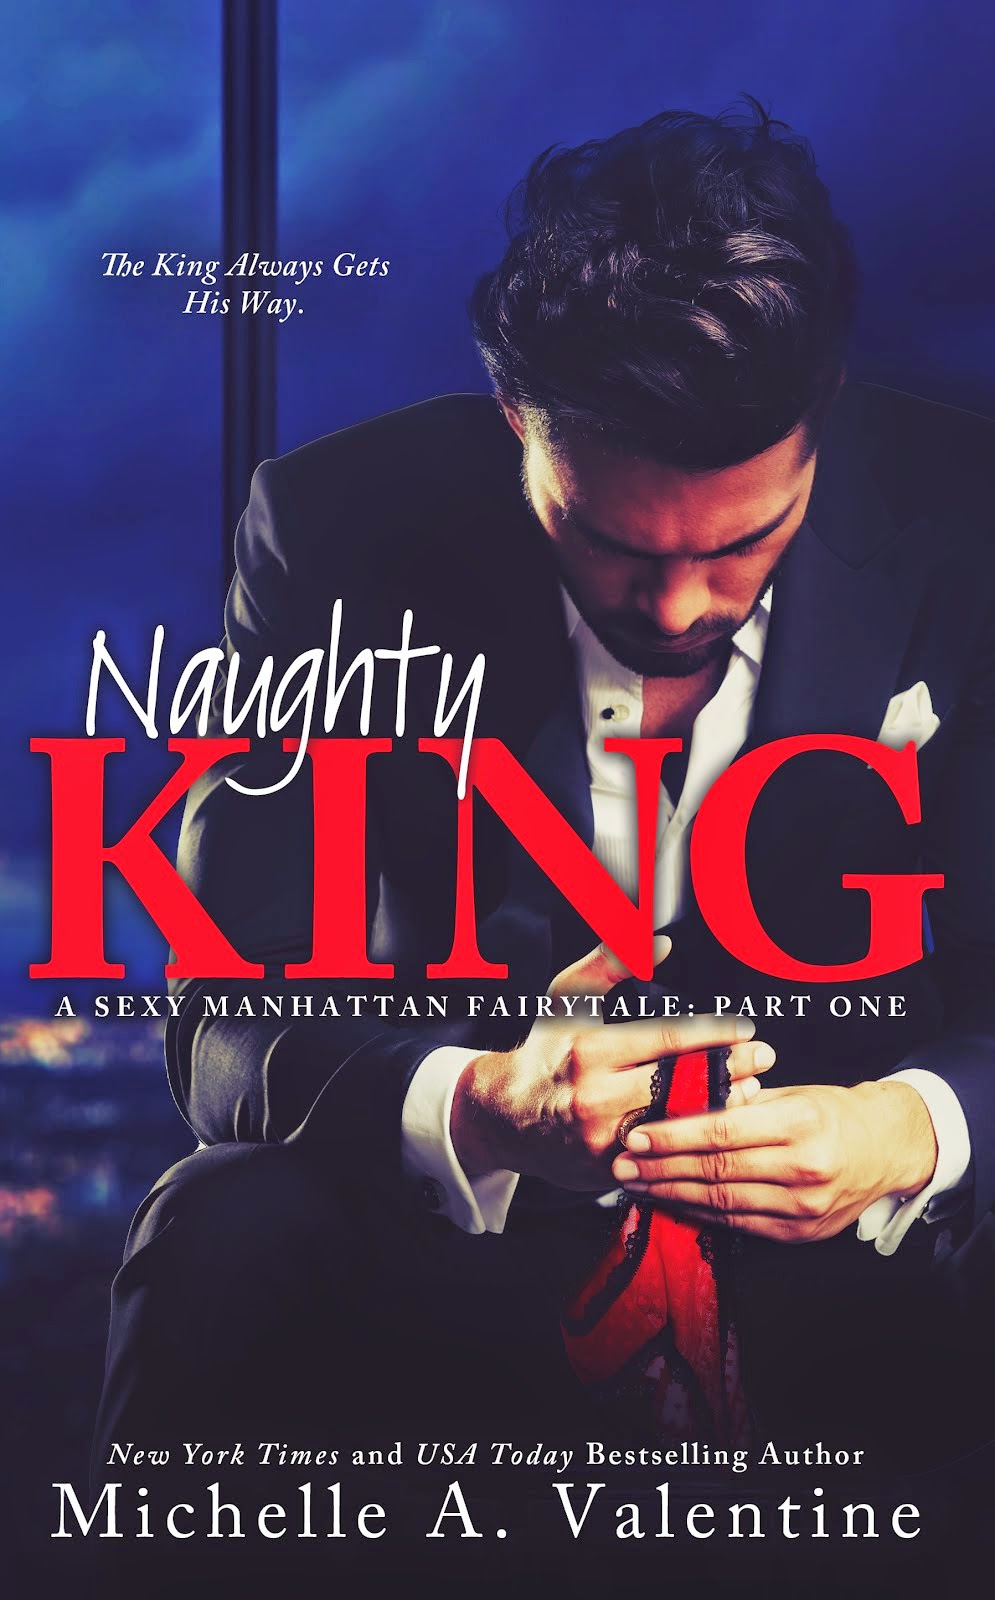 Next Release: Naughty King